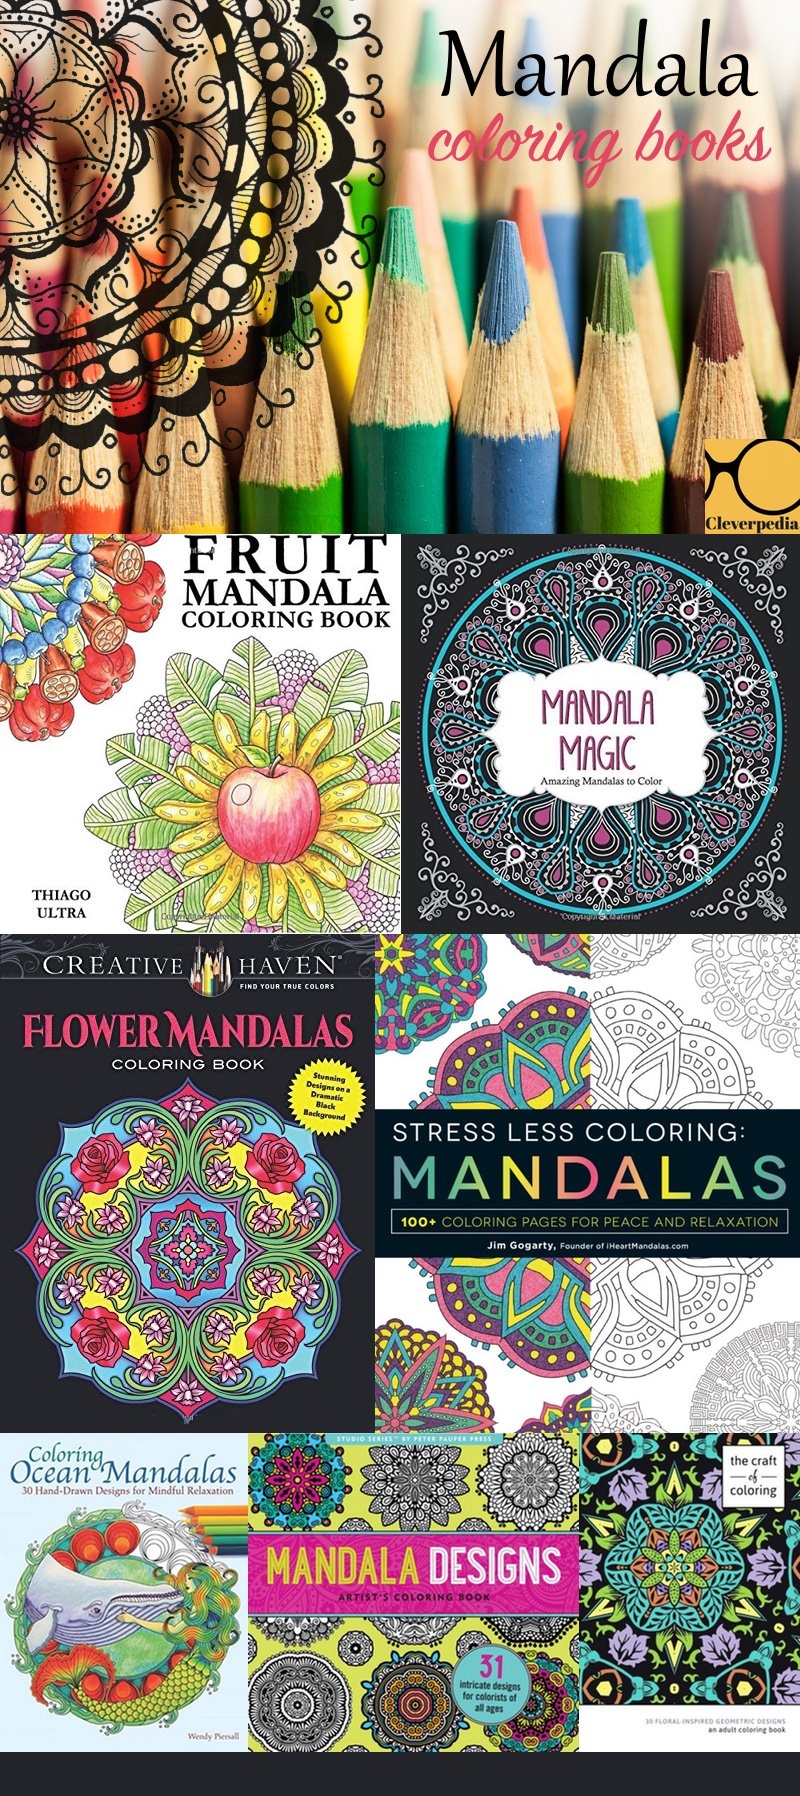 The mandala coloring book jim gogarty - Mandalas Are Probably The Most Stress Relieving Types Of Coloring Books Out There They